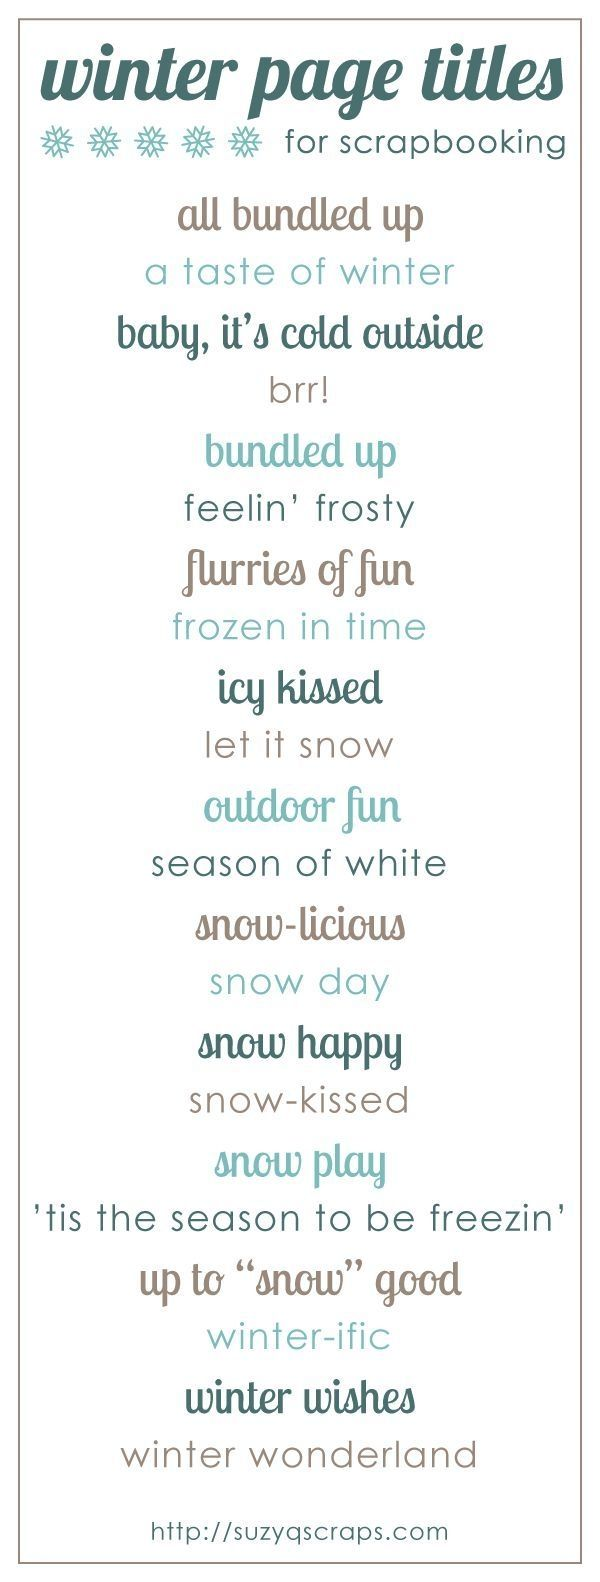 Winter scrapbook page titles by kari